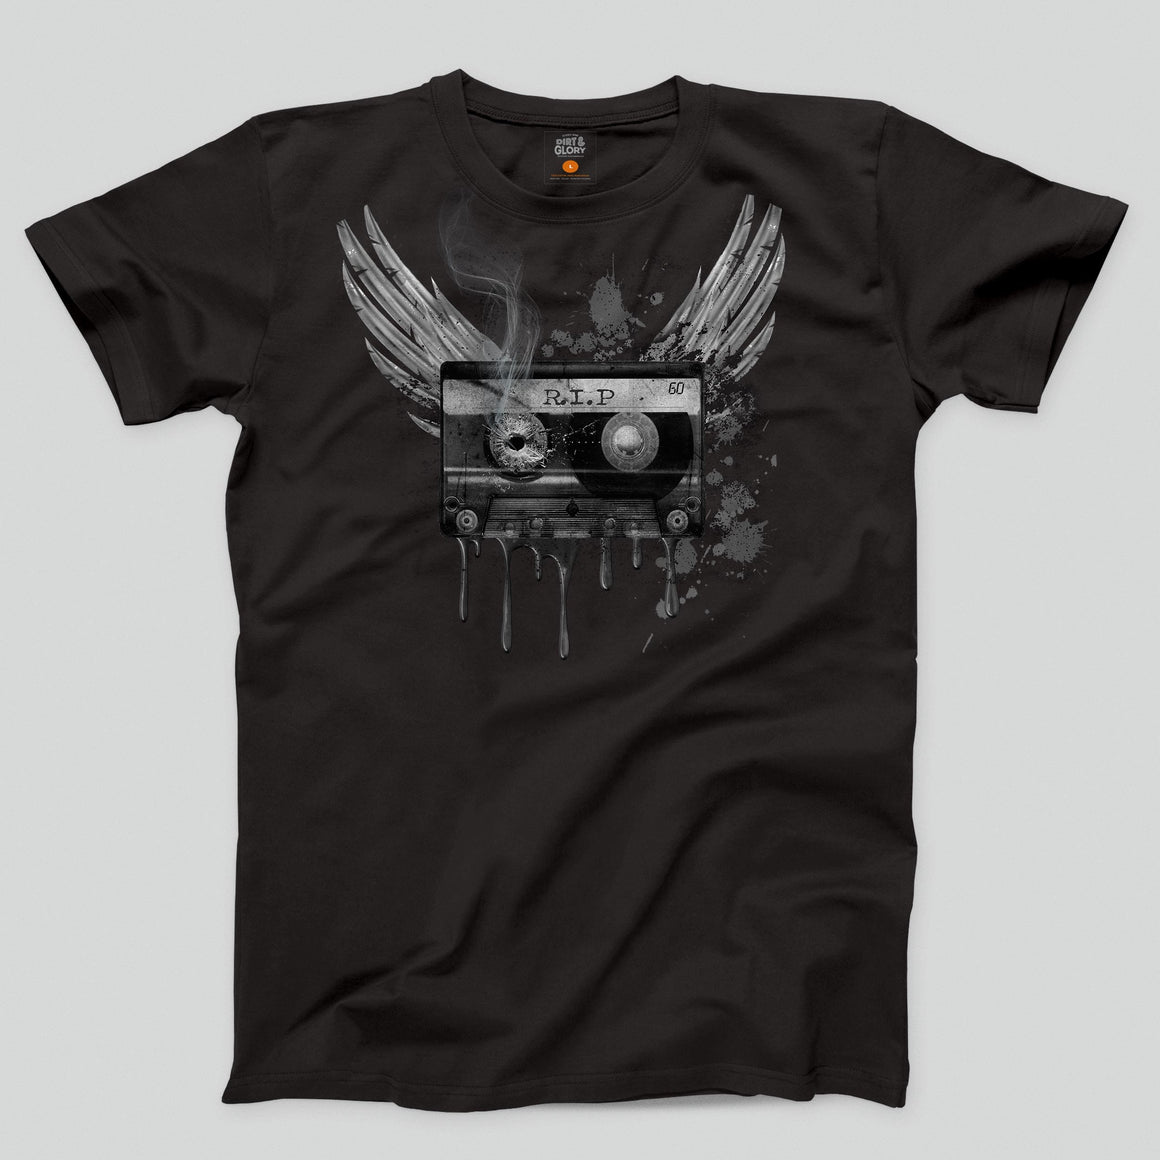 Tape Death - Men's/Unisex T-shirt T-shirt by DIRT & GLORY